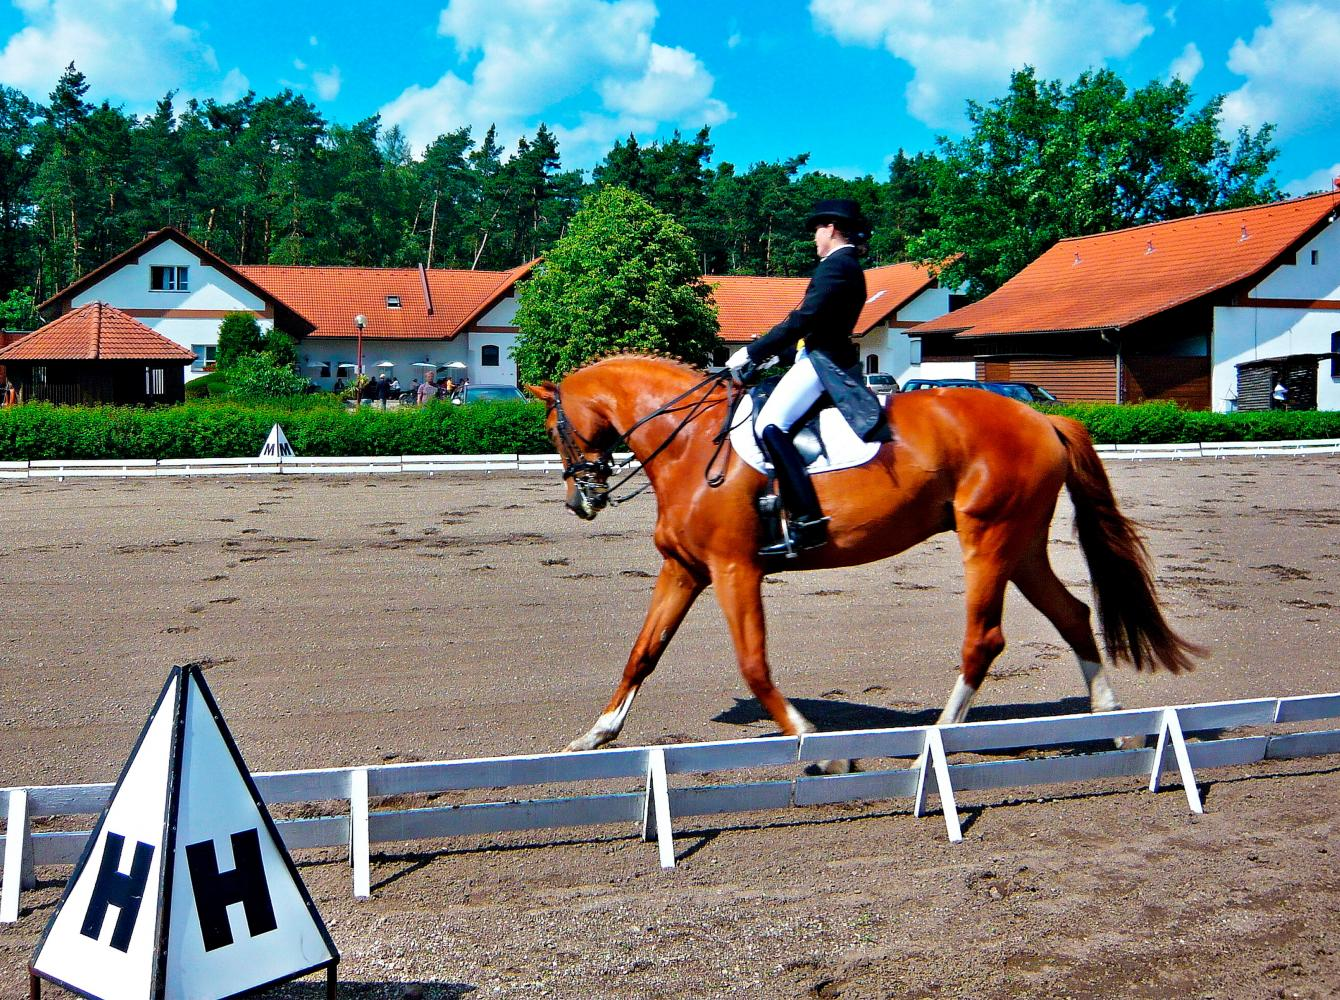 Outdoors dressage in Koleda, Czech Republic